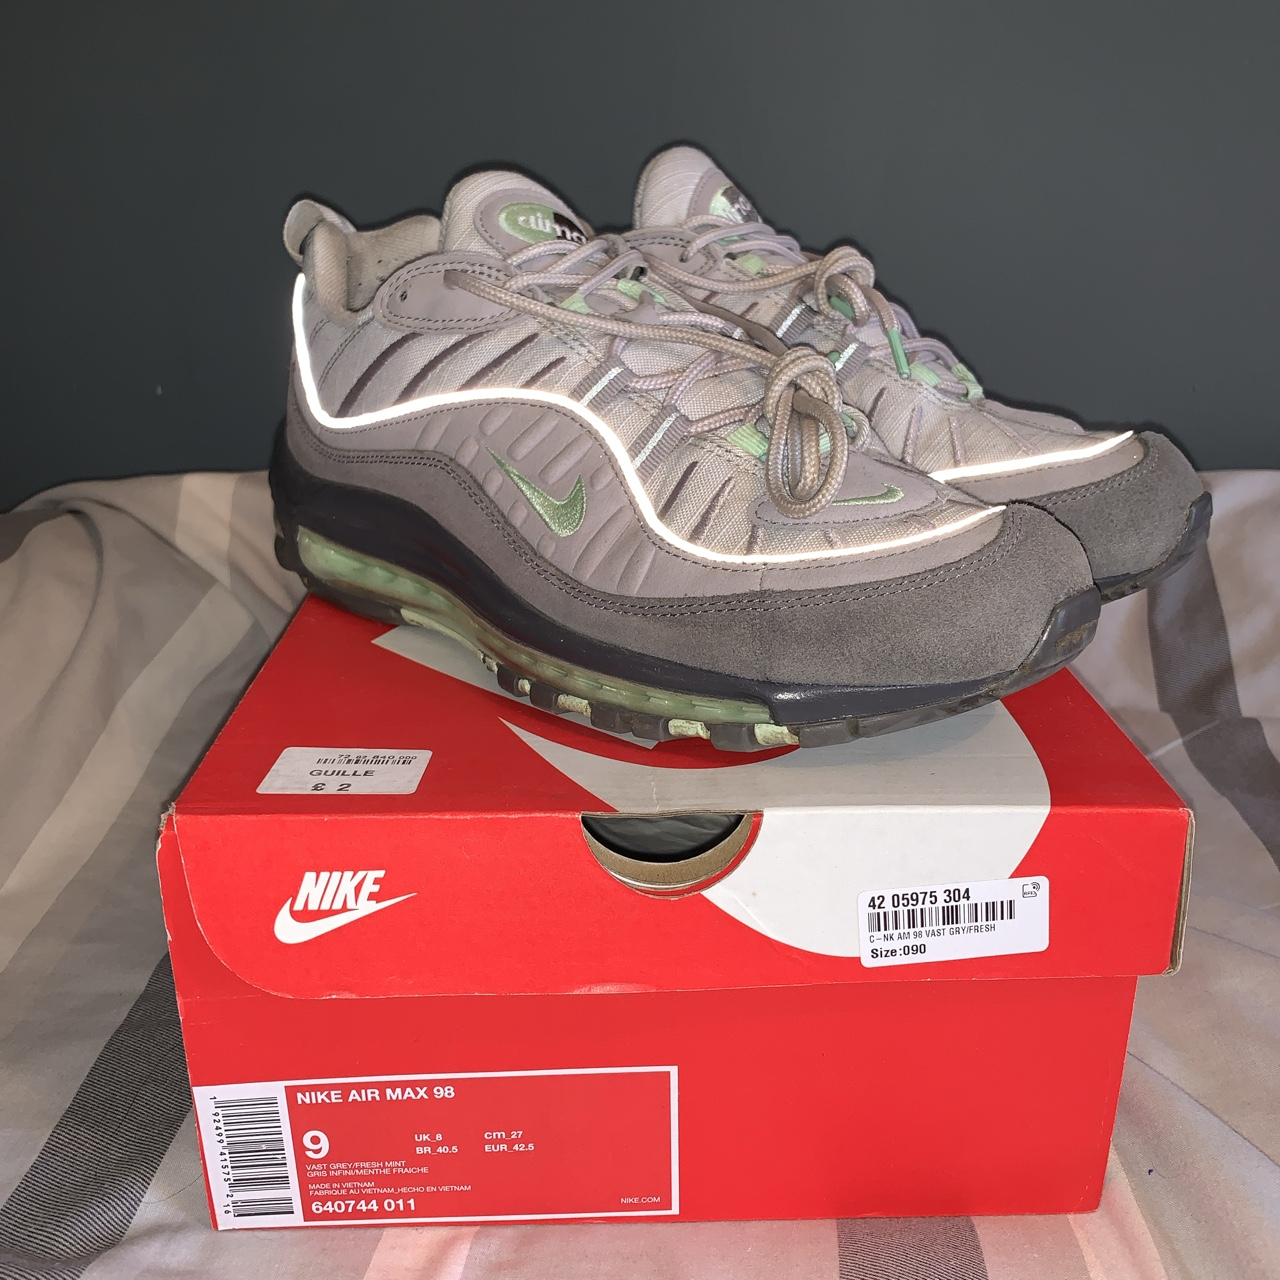 NIKE AIR MAX 98 GREY/MINT GREEN CONDITION - 8/10... - Depop